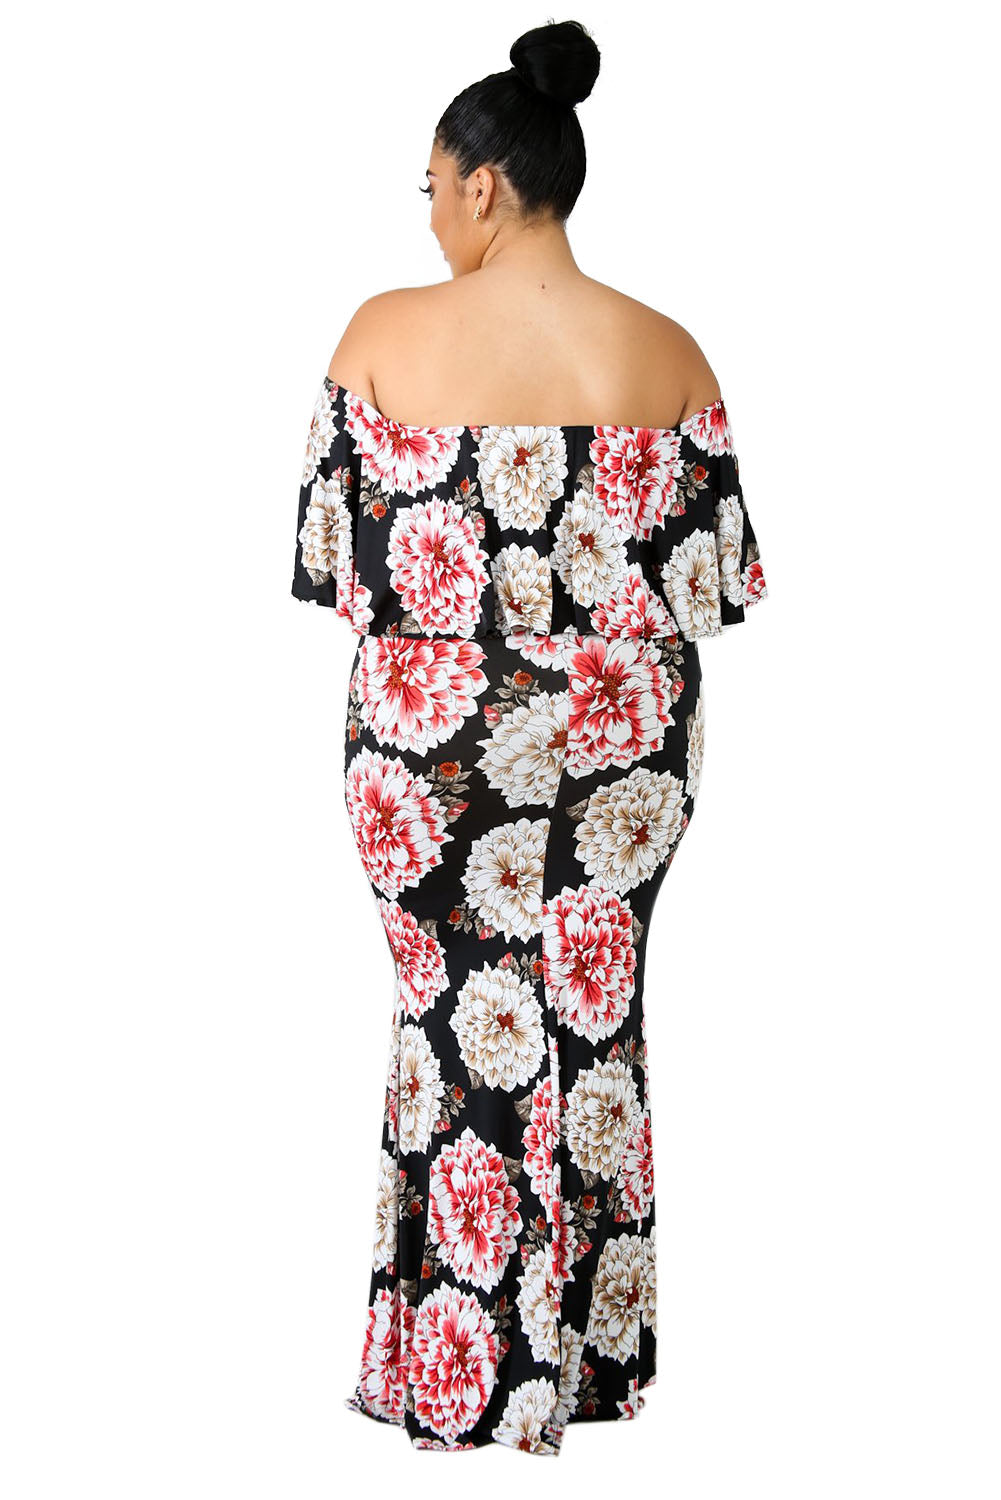 Sky Bloom Plus Size Maxi Dress